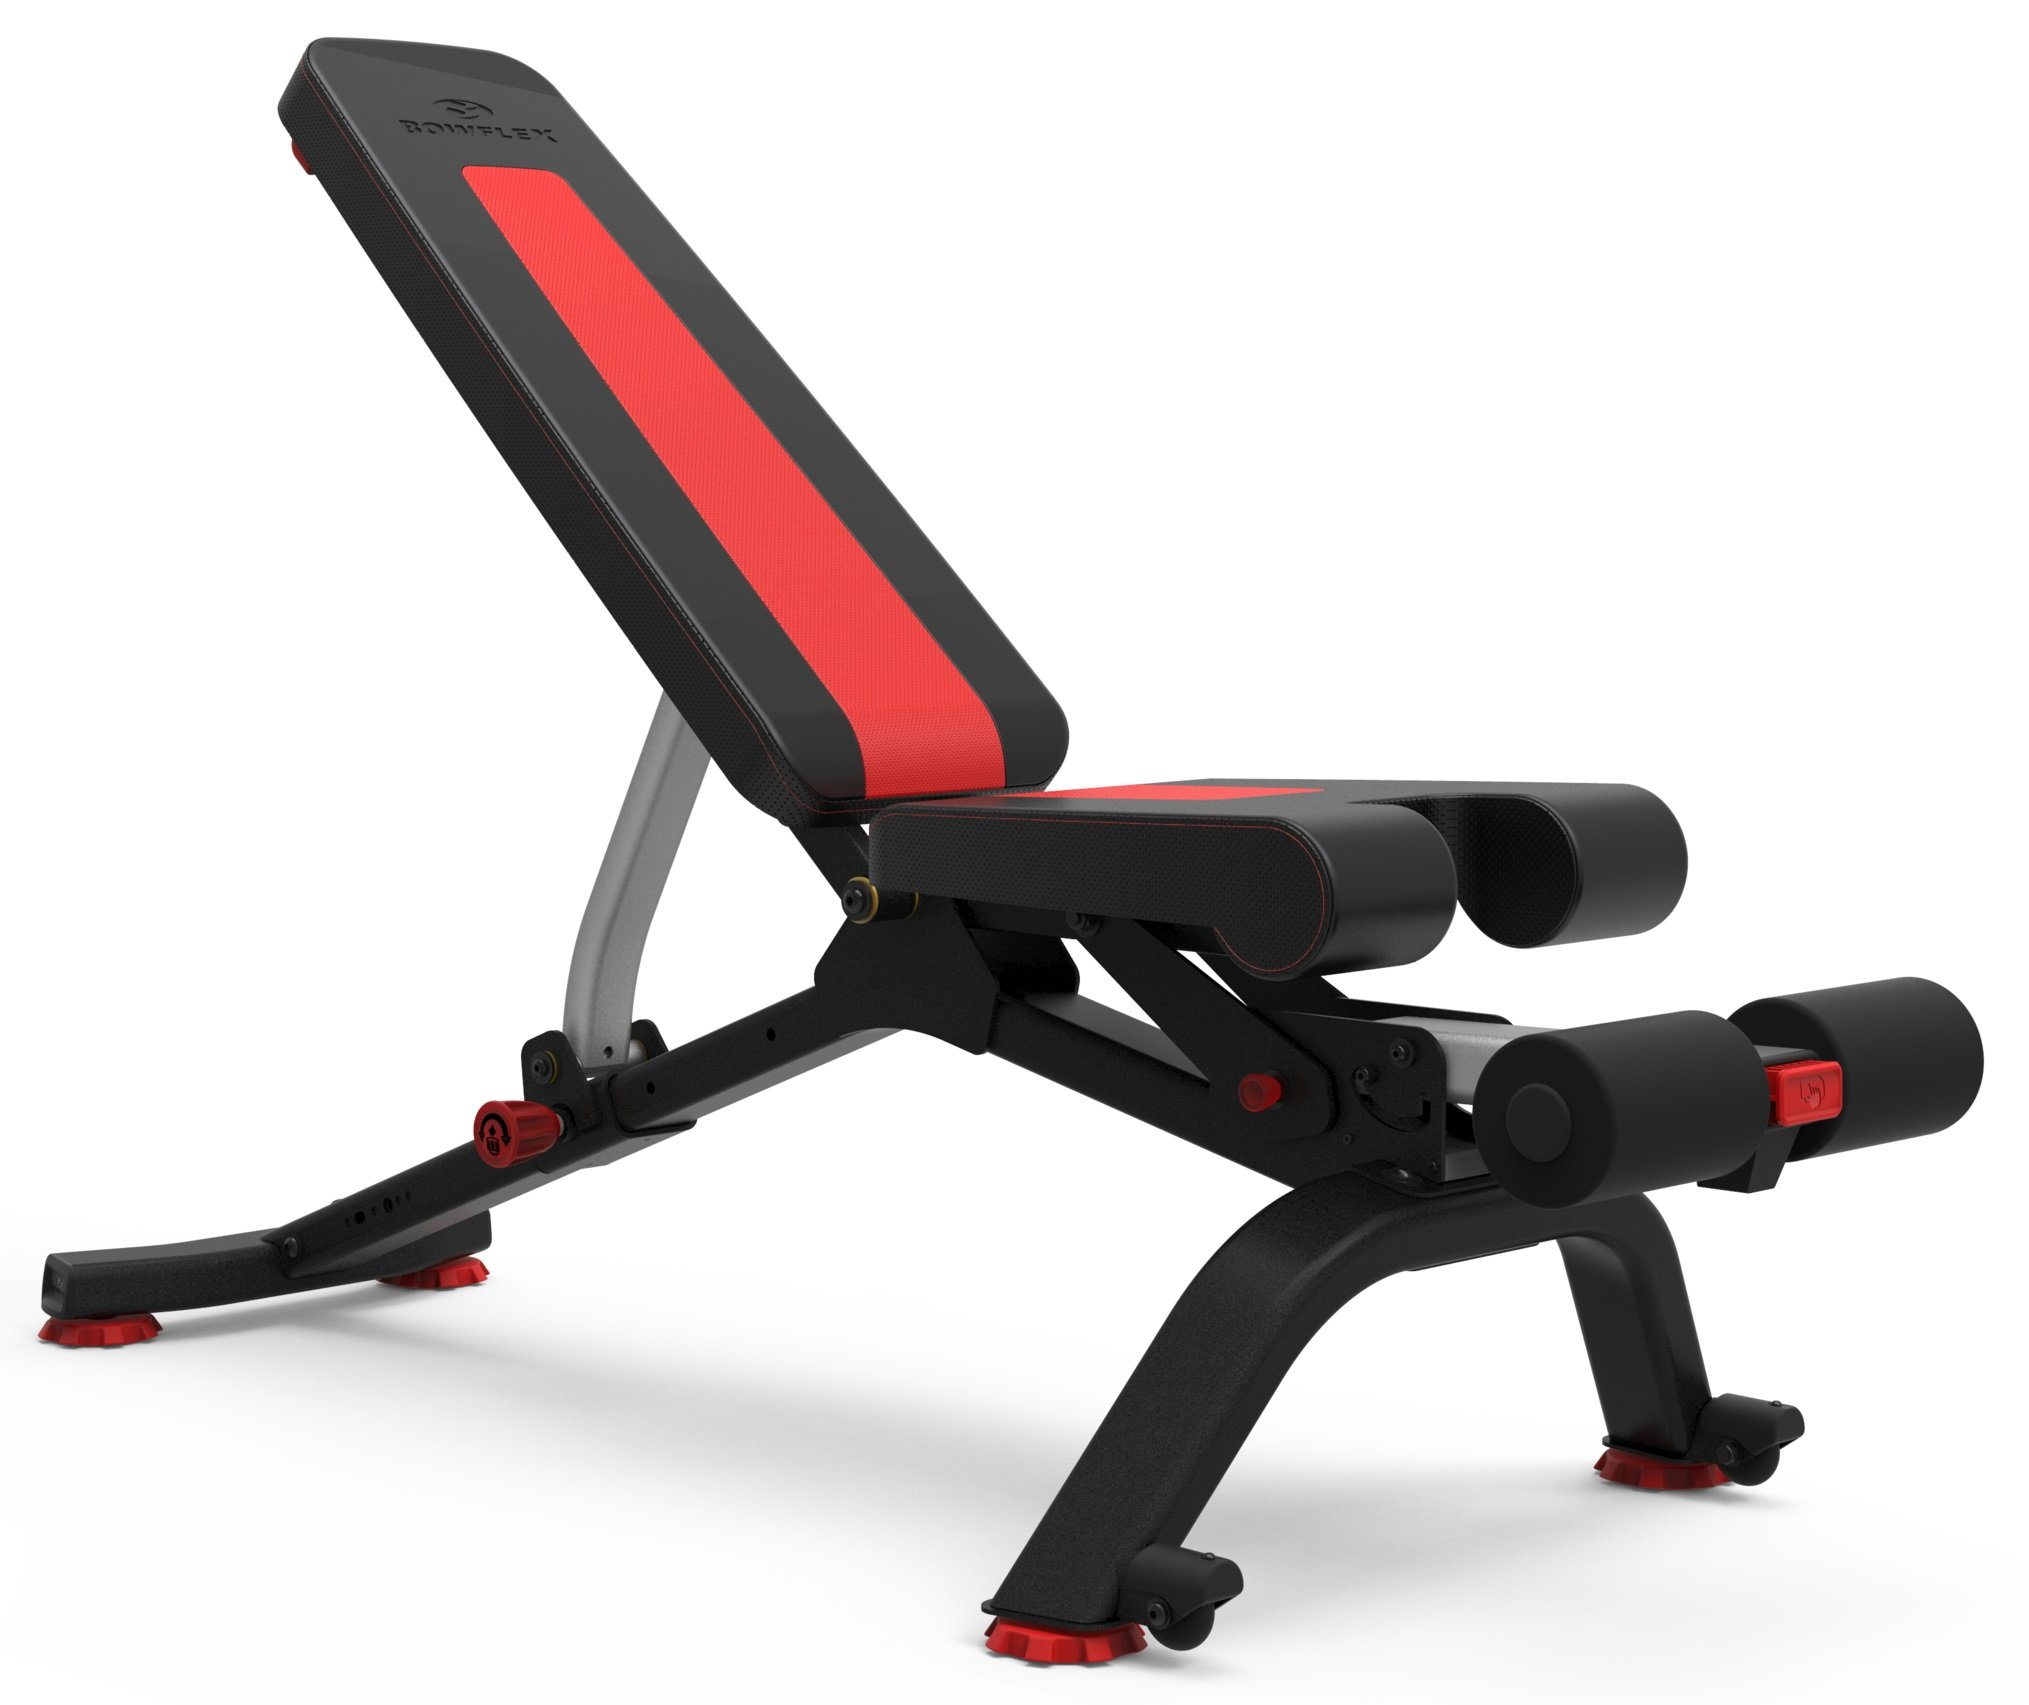 bench dp light fitness x preacher olympic with bowflex adjustable lb class utility attachment developer amazon weight l leg commercial reality benches curl